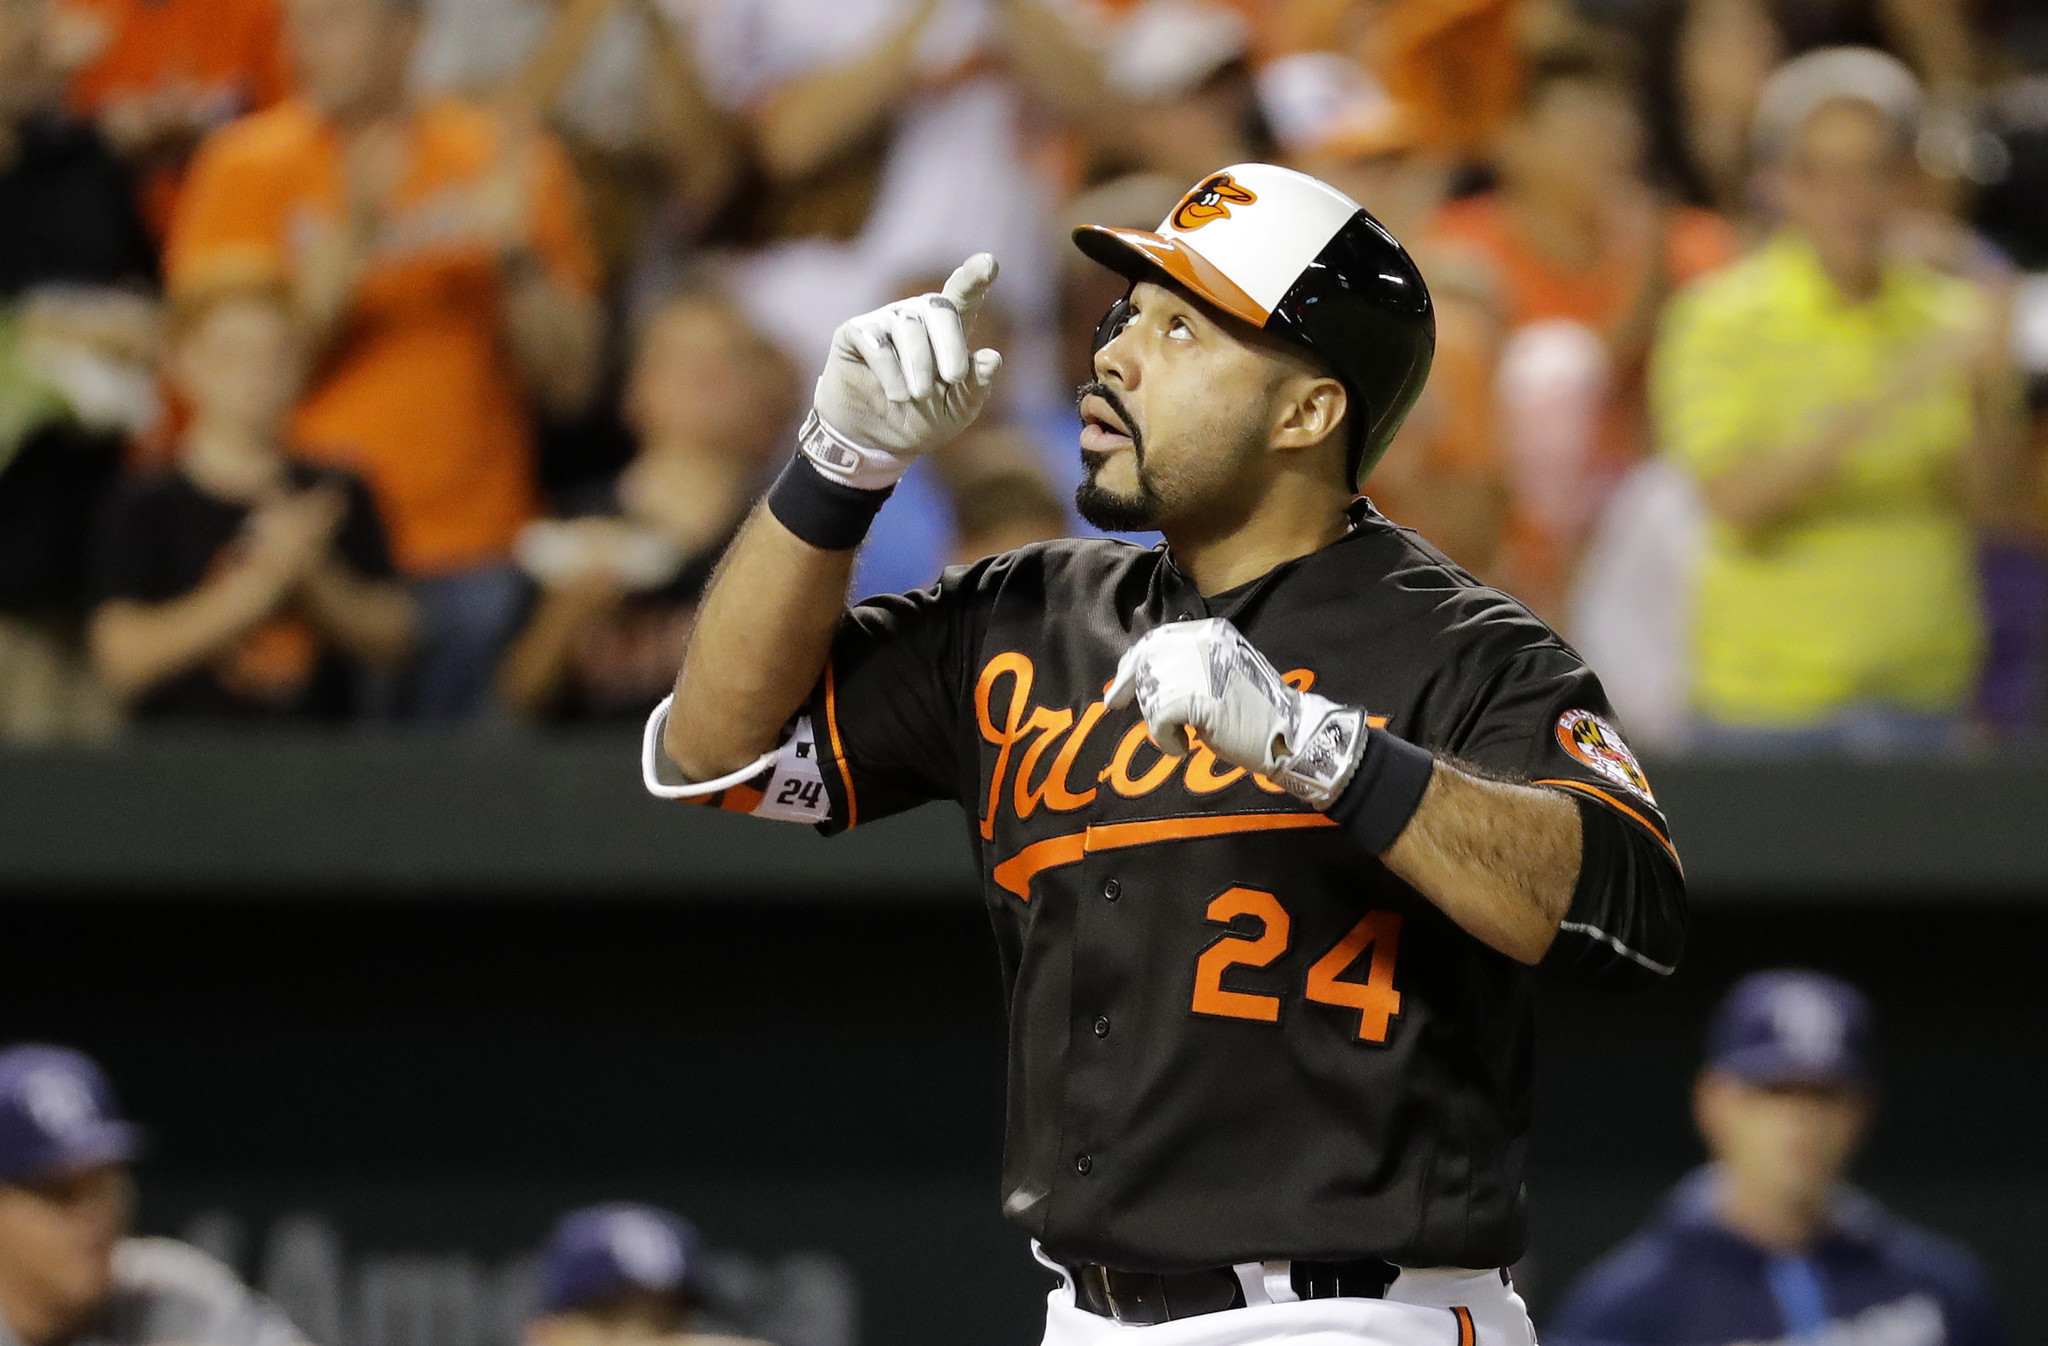 Bal-pedro-alvarez-productive-in-first-outfield-start-as-orioles-beat-yankees-5-4-20170318